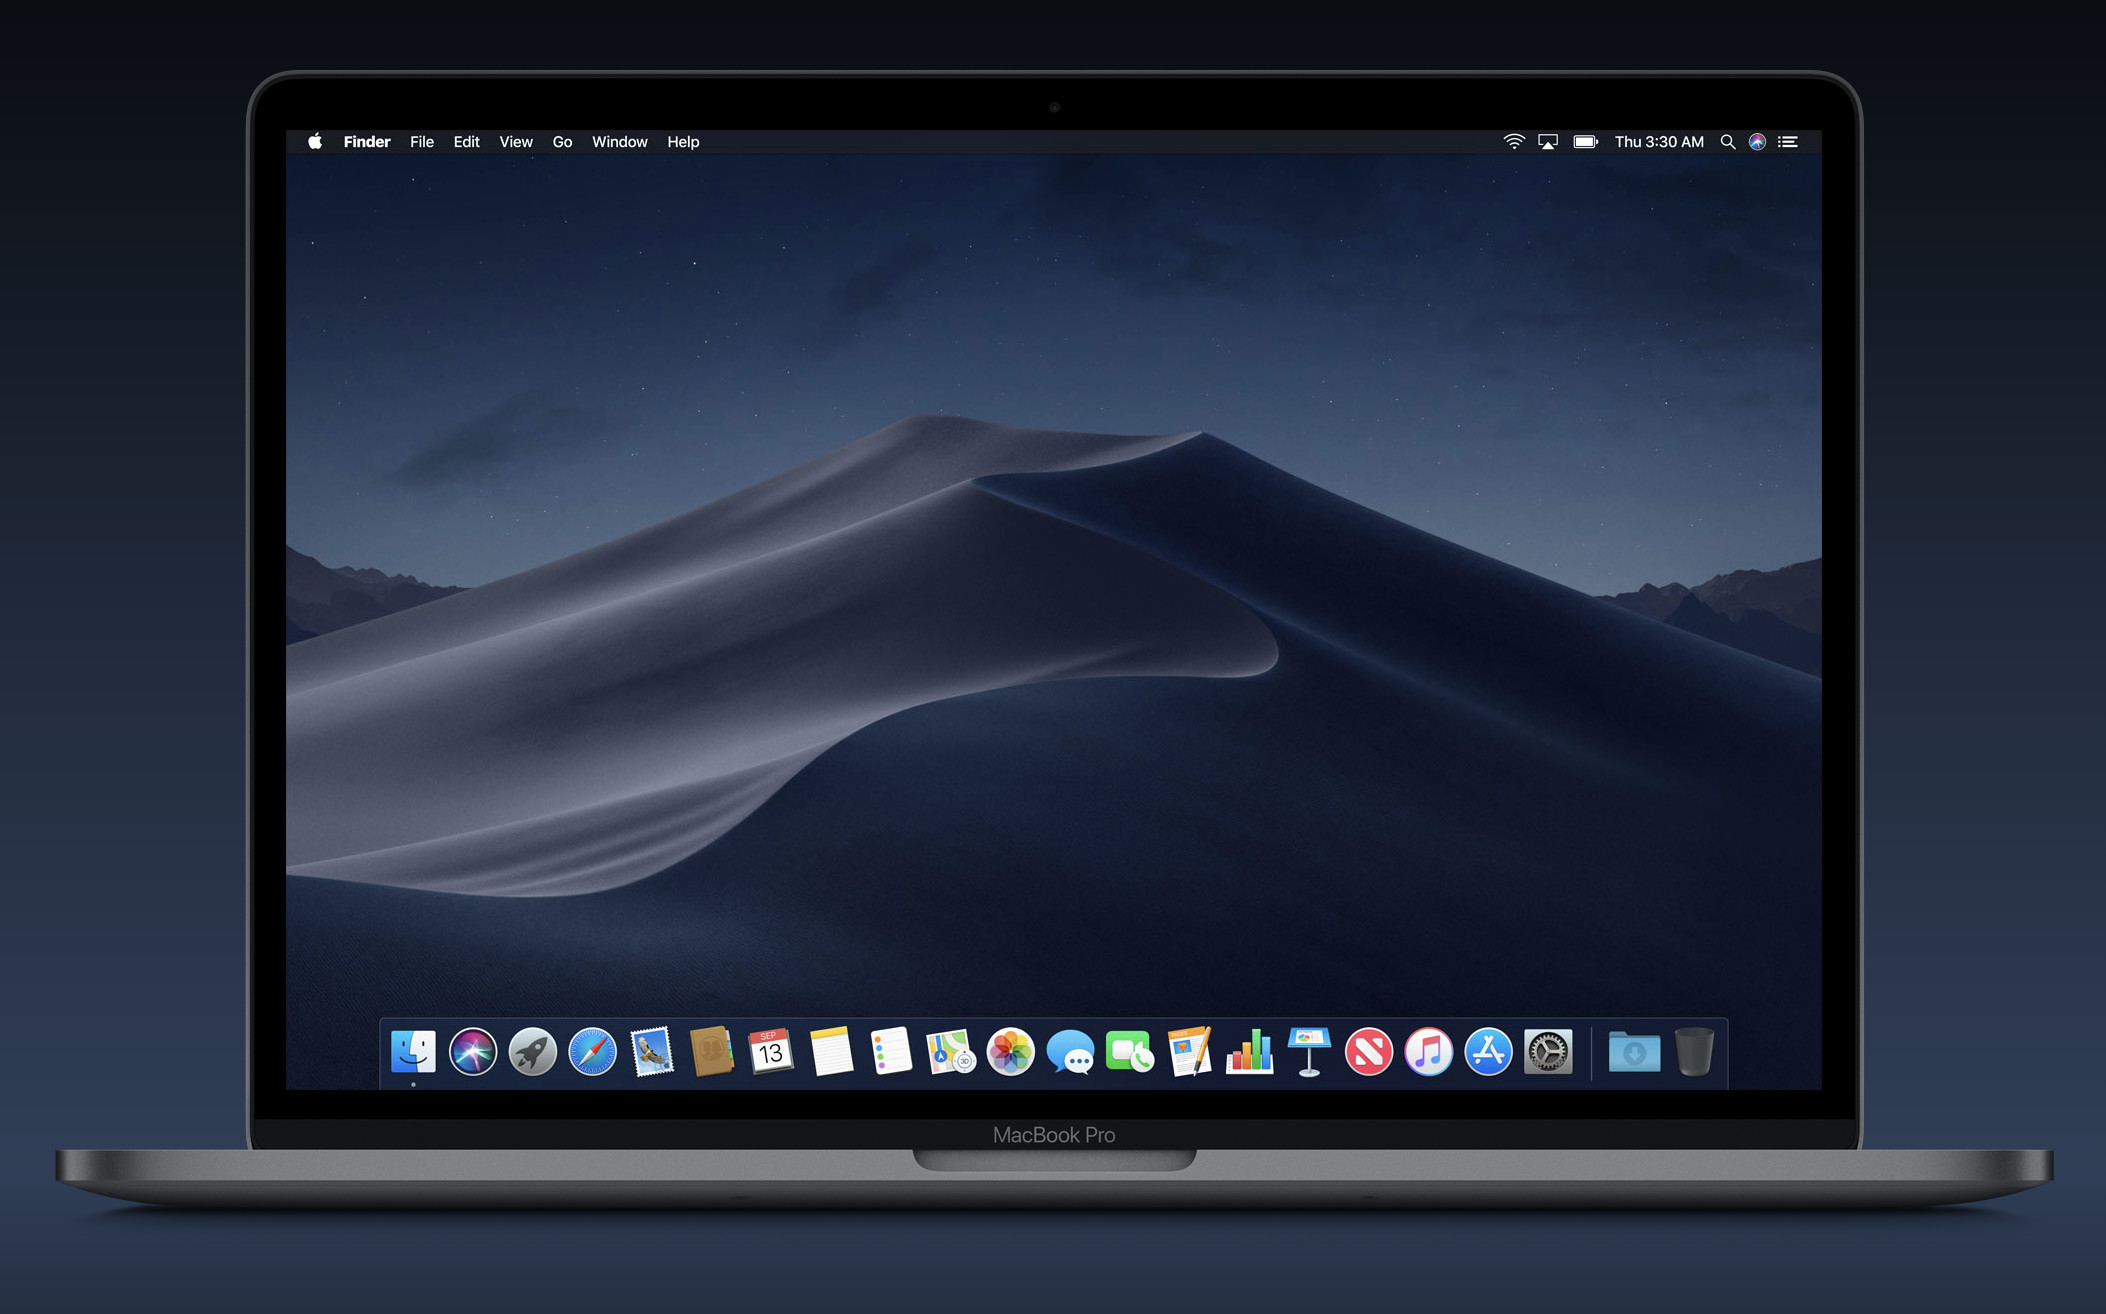 MacOS Mojave is now officially available for download